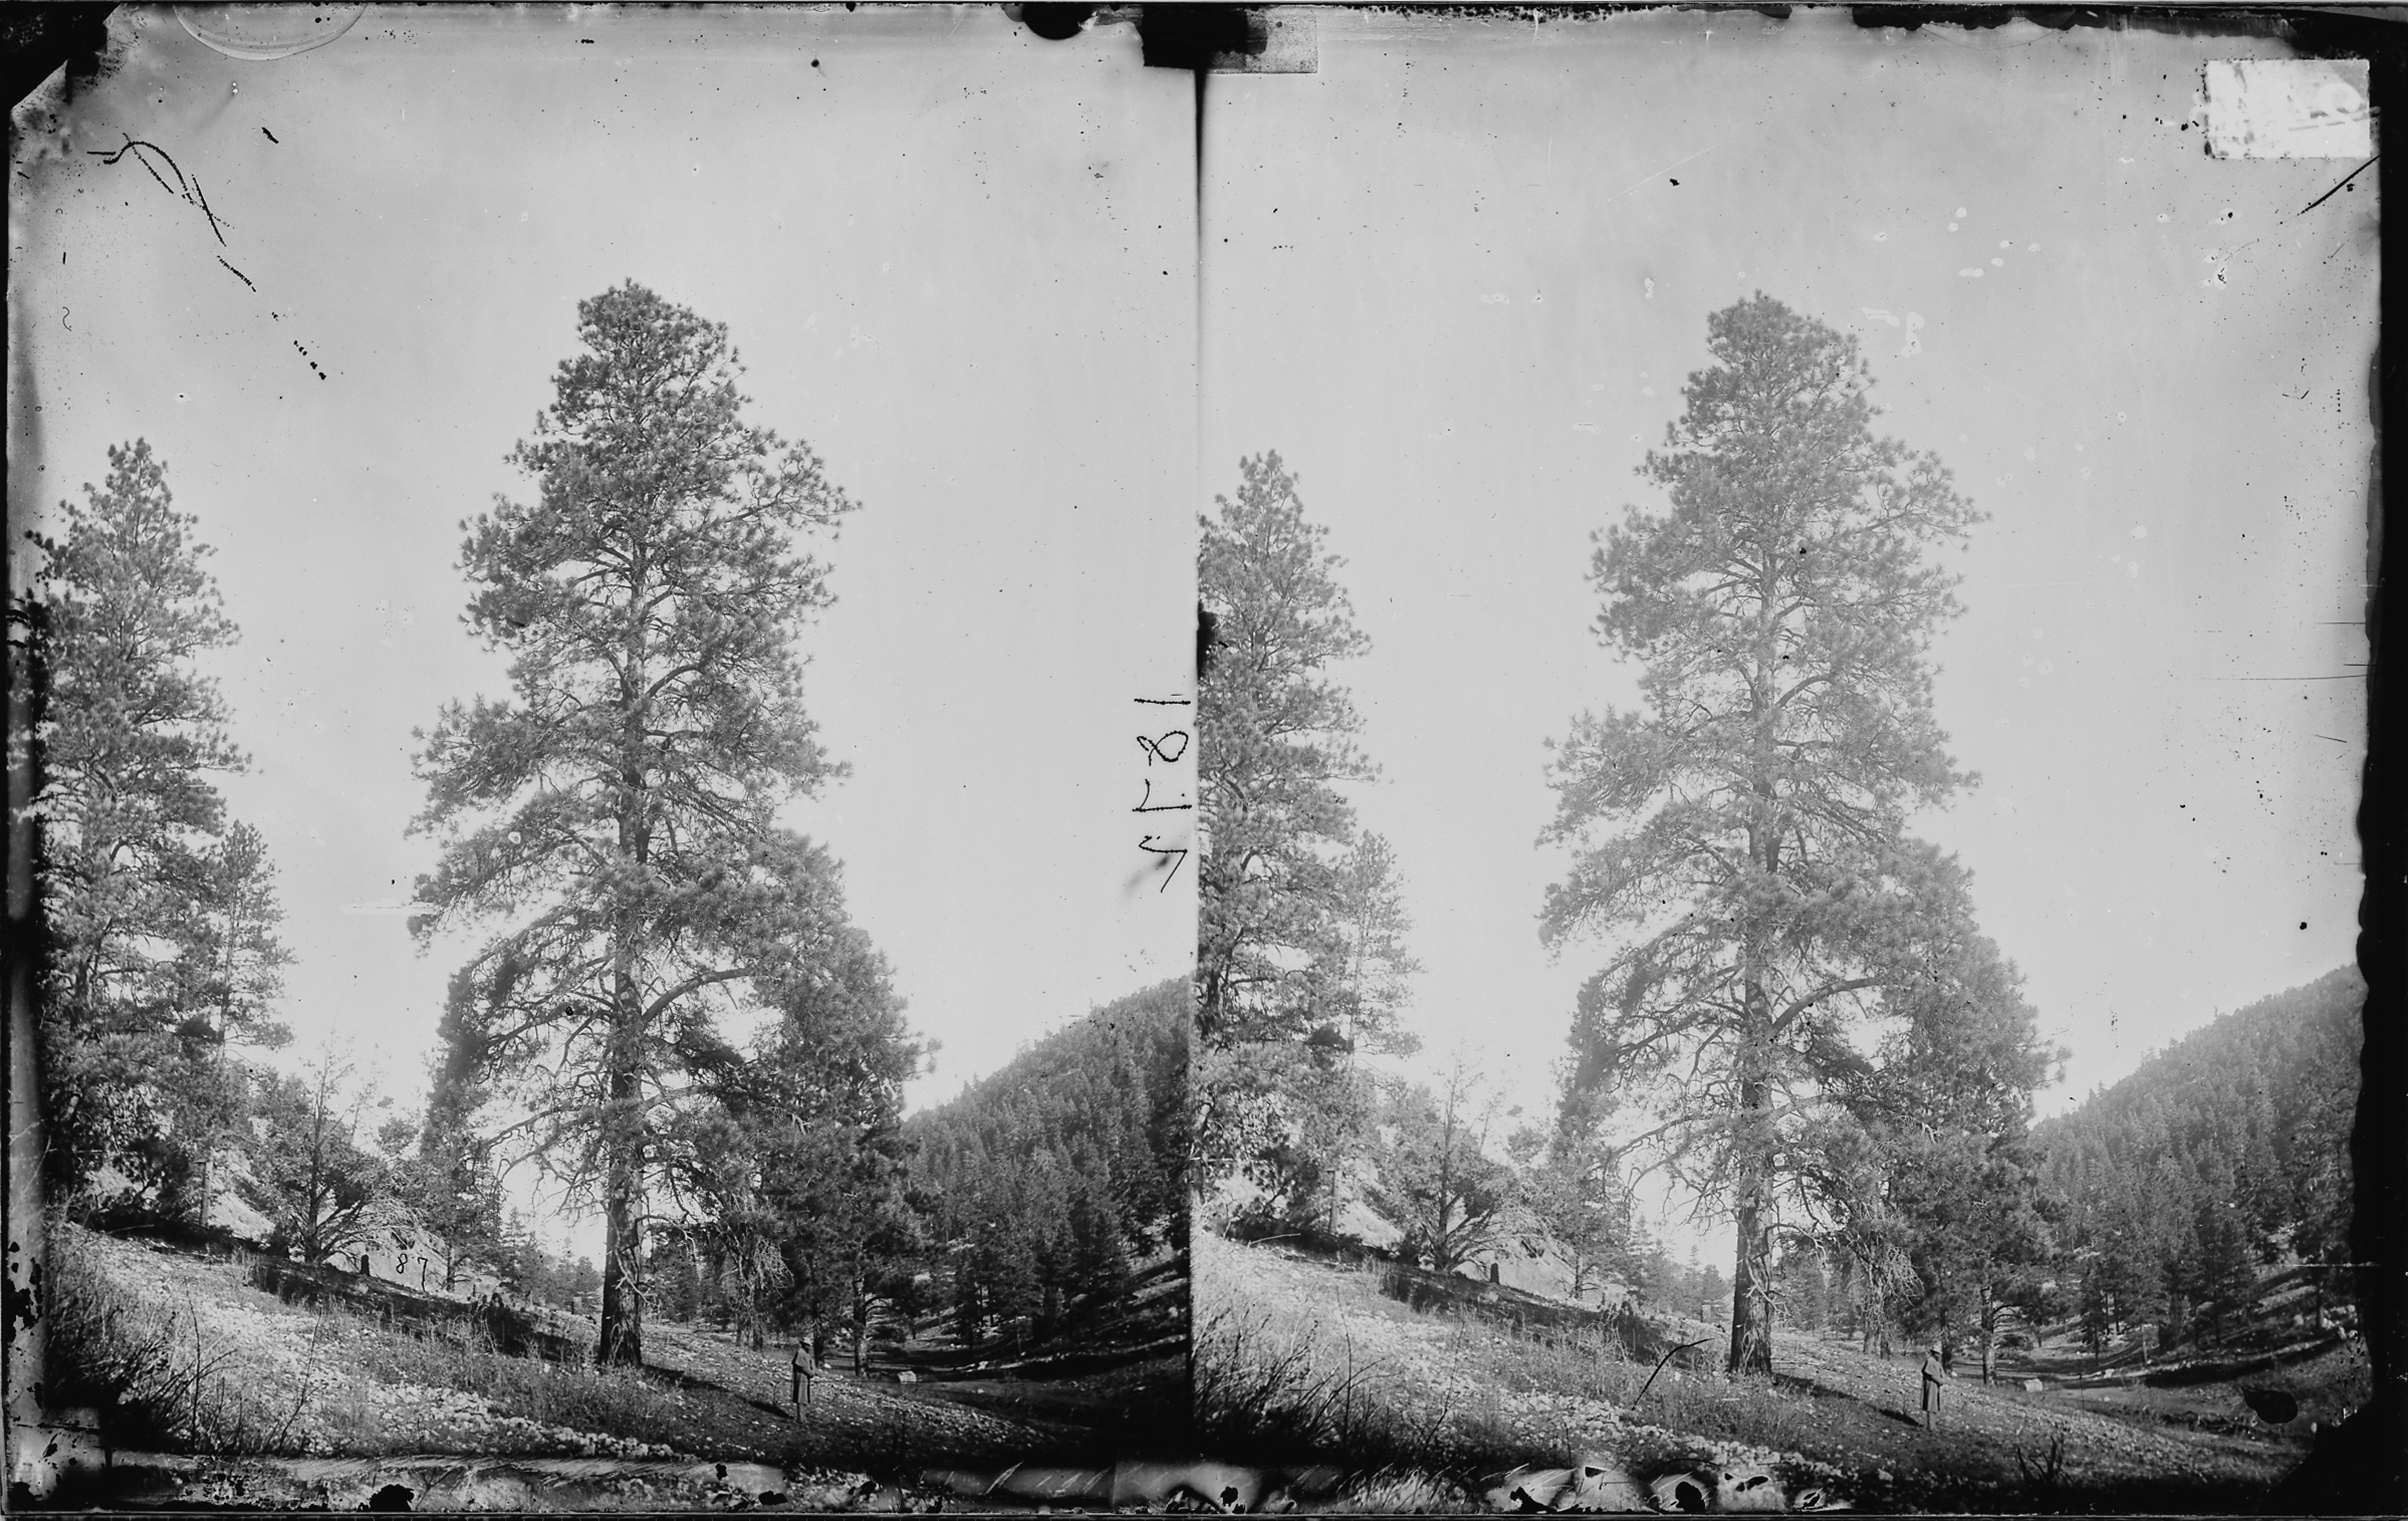 YELLOW PINE, TIMBER TREE OF HIGH PLATEAUS IN UTAH, ARIZONA & NEW MEXICO, COLORADO RIVER - NARA - 524009